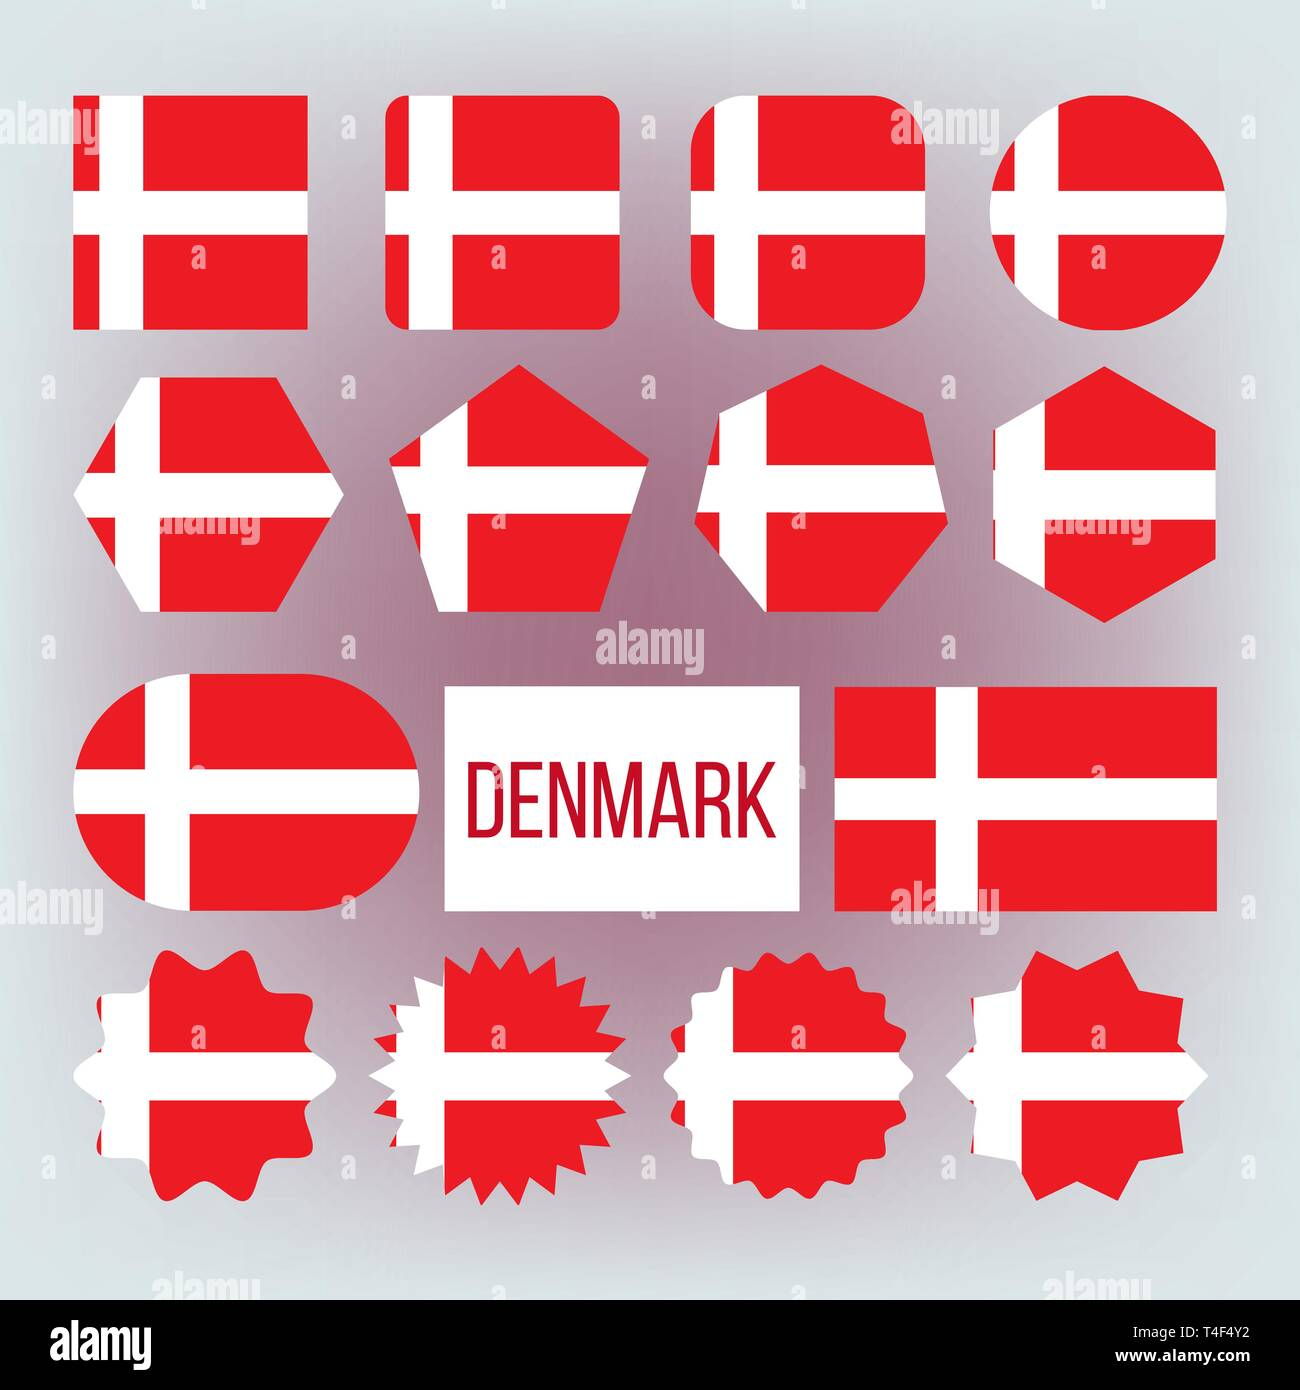 Danish National Colors, Insignia Vector Icons Set - Stock Image